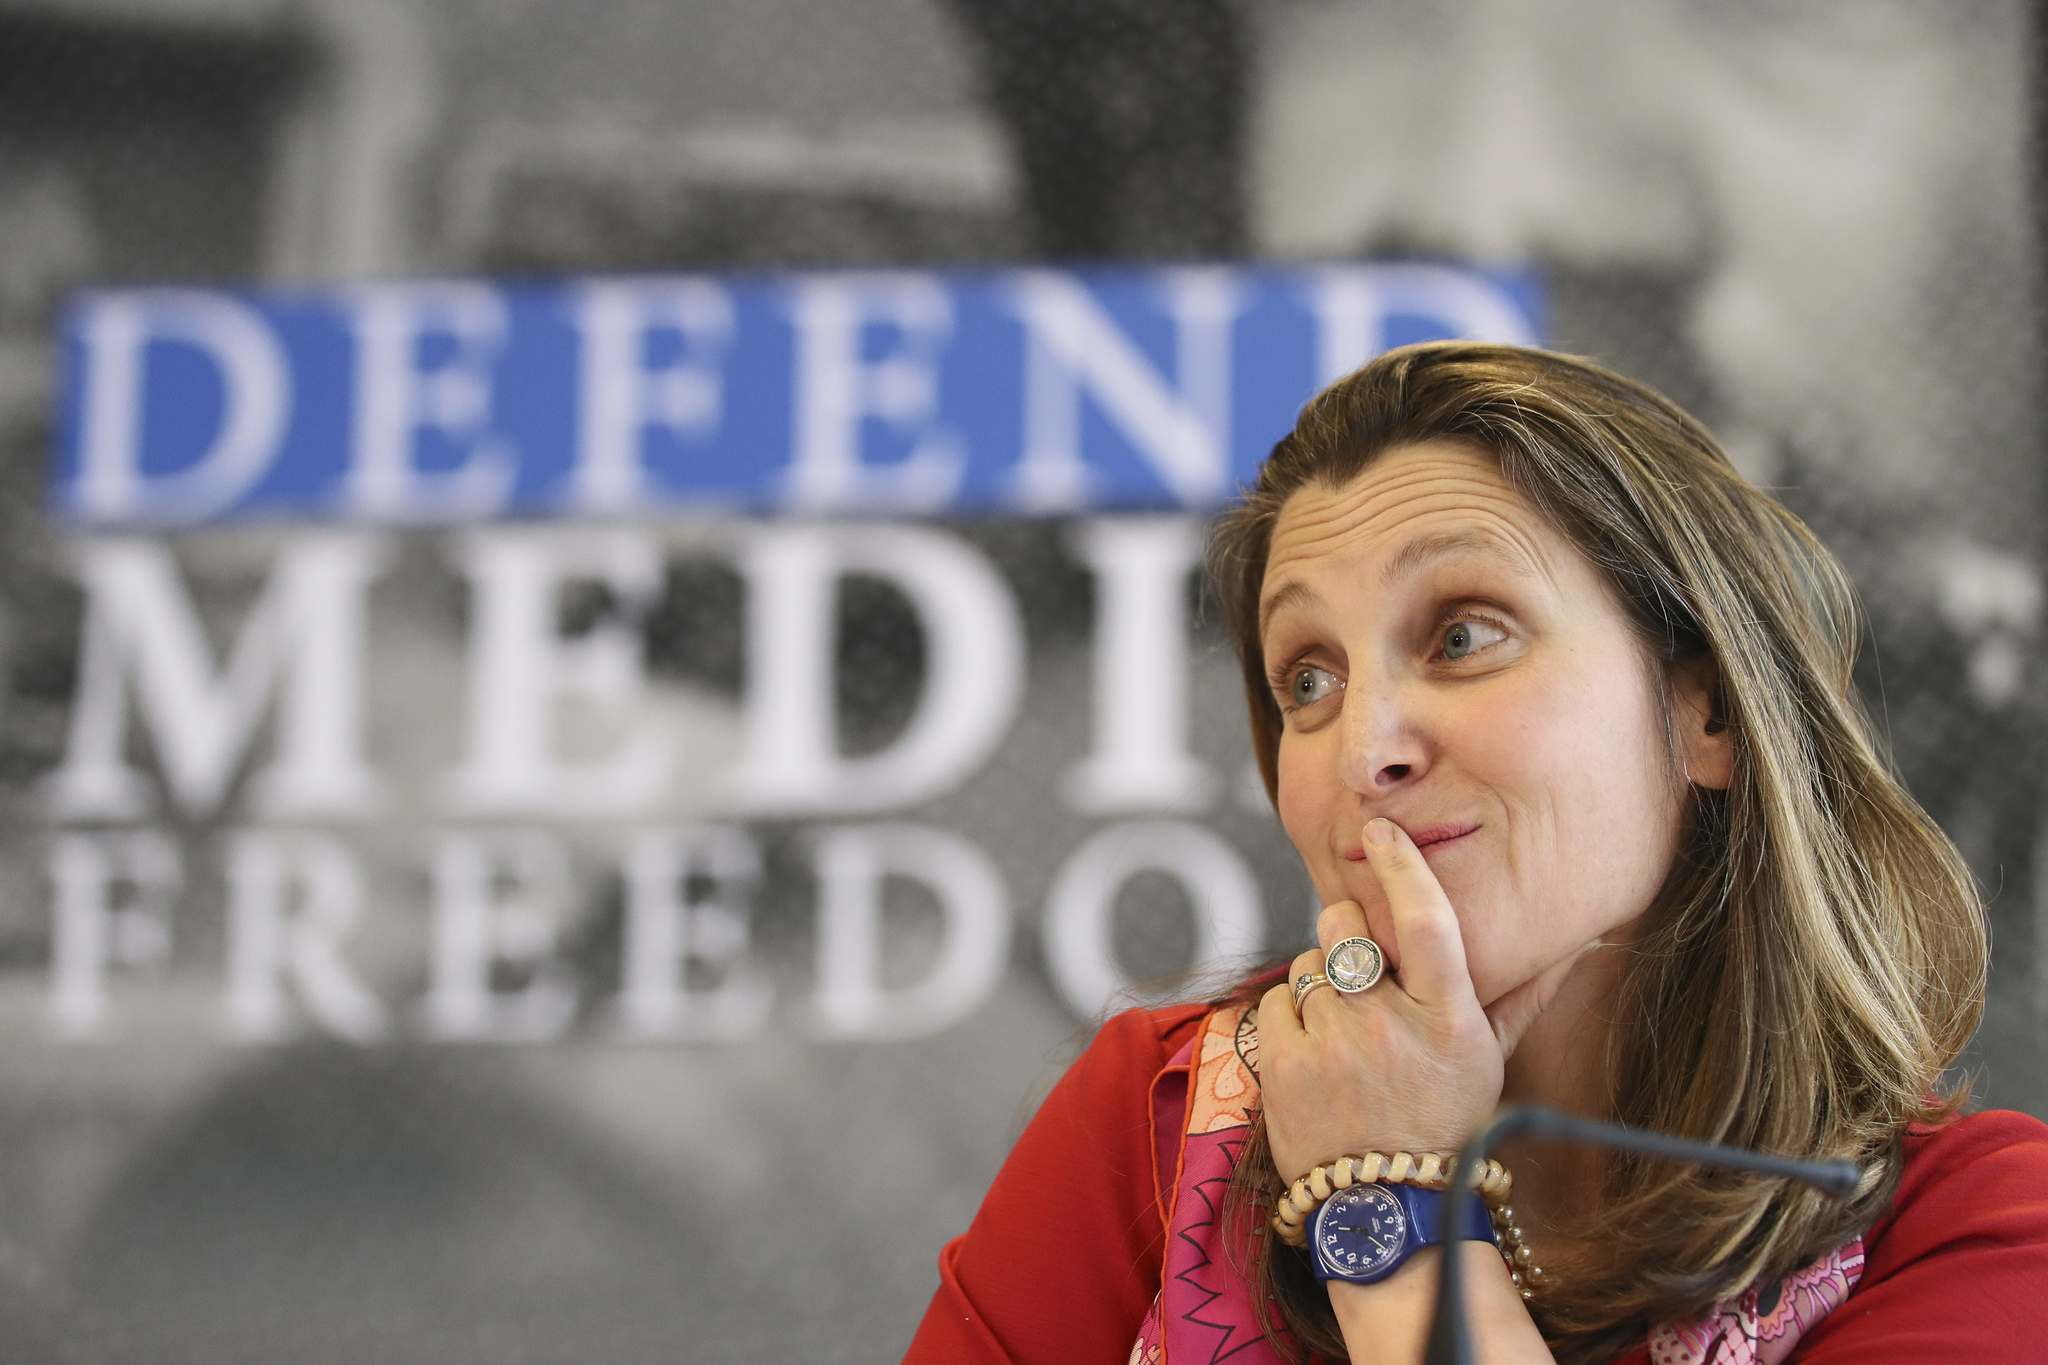 Canada's Foreign Affairs Minister Chrystia Freeland said tech firms have similarities to monopolies that were broken up a century ago. (David Vincent / The Canadian Press files)